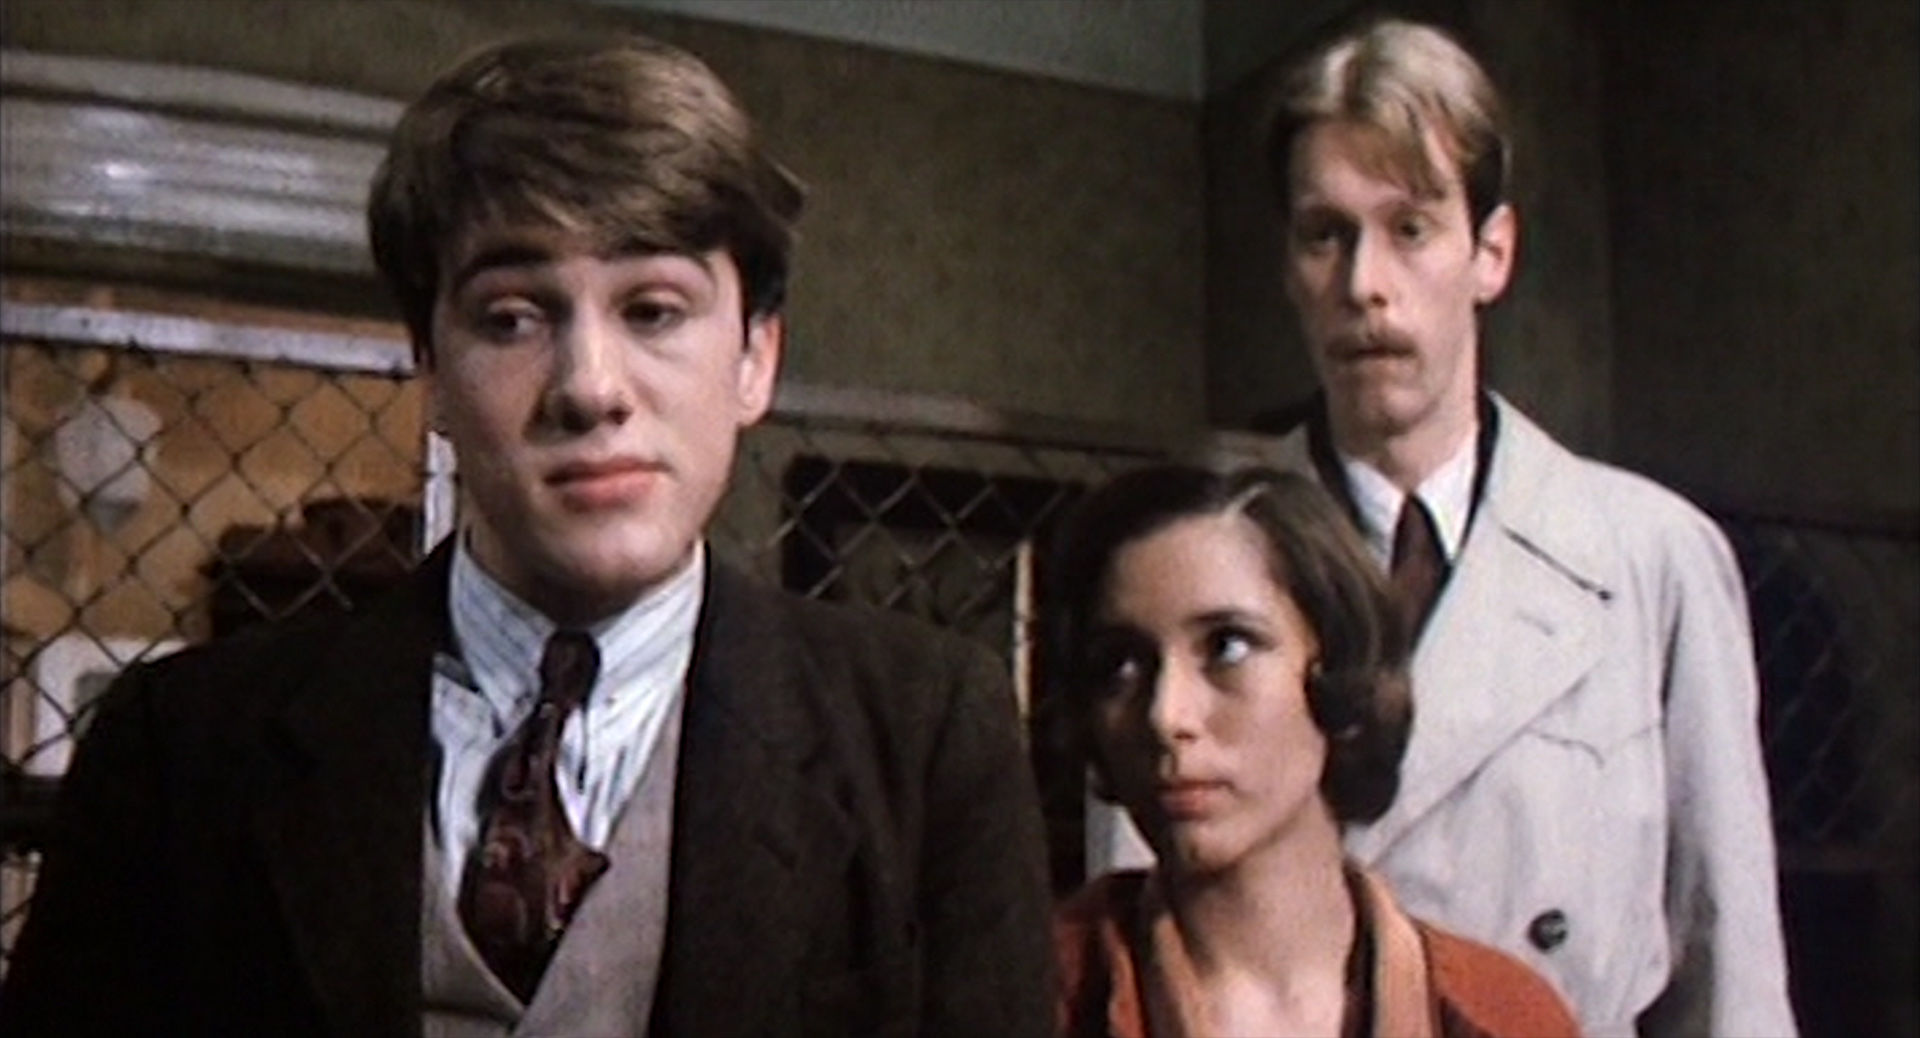 Christoph Waltz (Ede), Ute Willing (Edes Verlobte), Gottfried Vollmer (Harry)